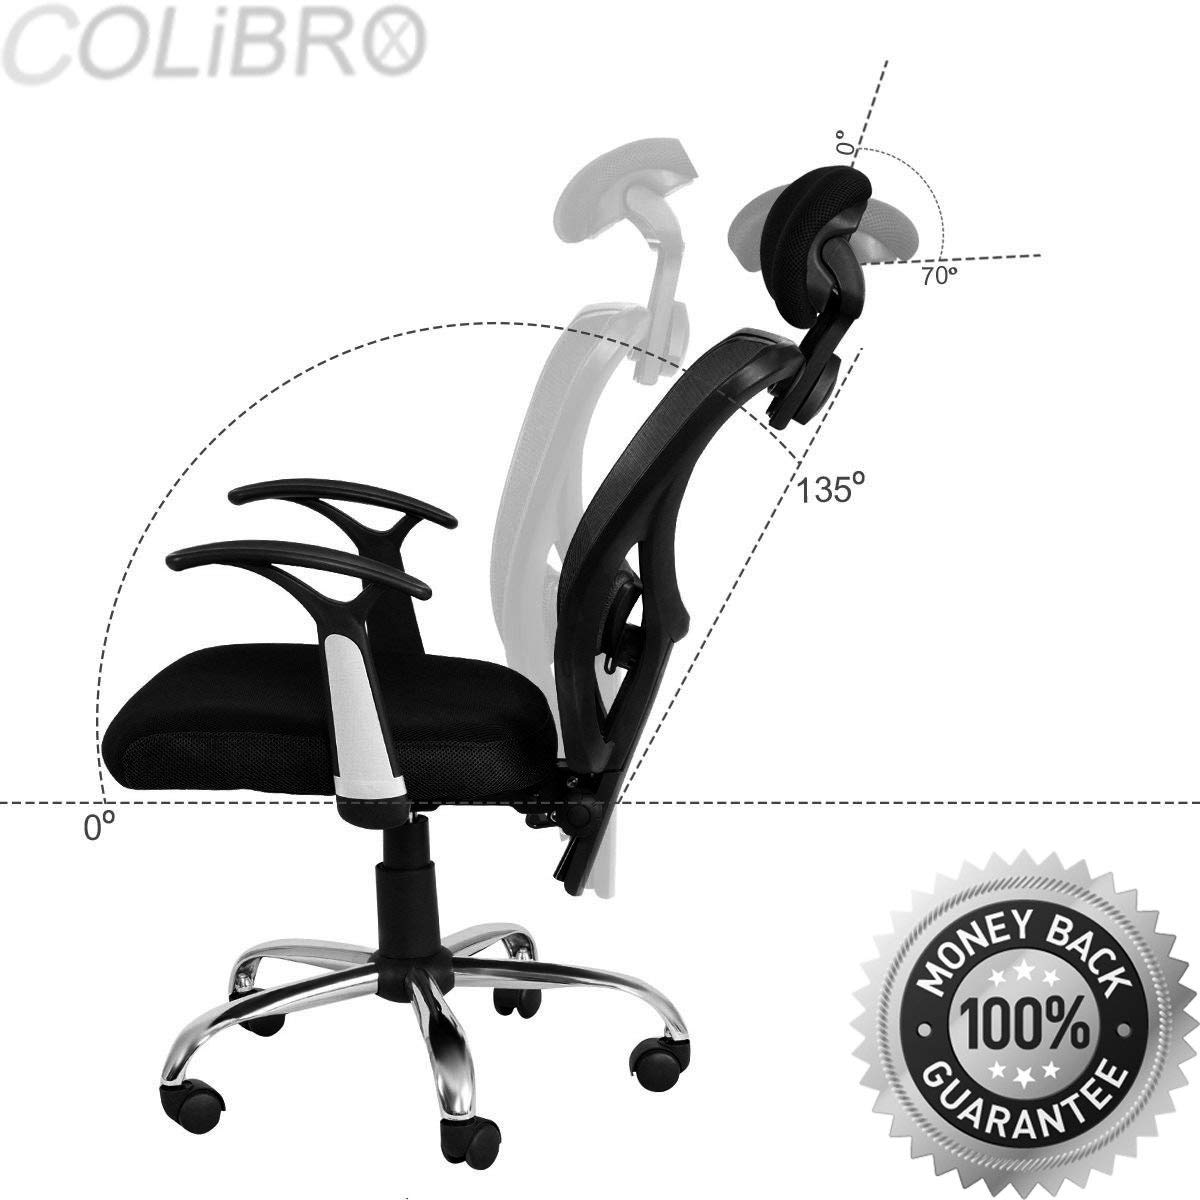 COLIBROX--Ergonomic Mesh High Back Office Chair Computer Desk Task Executive with Headrest. modern ergonomic mesh high back executive computer desk task office chair black. ergonomic mesh high back.